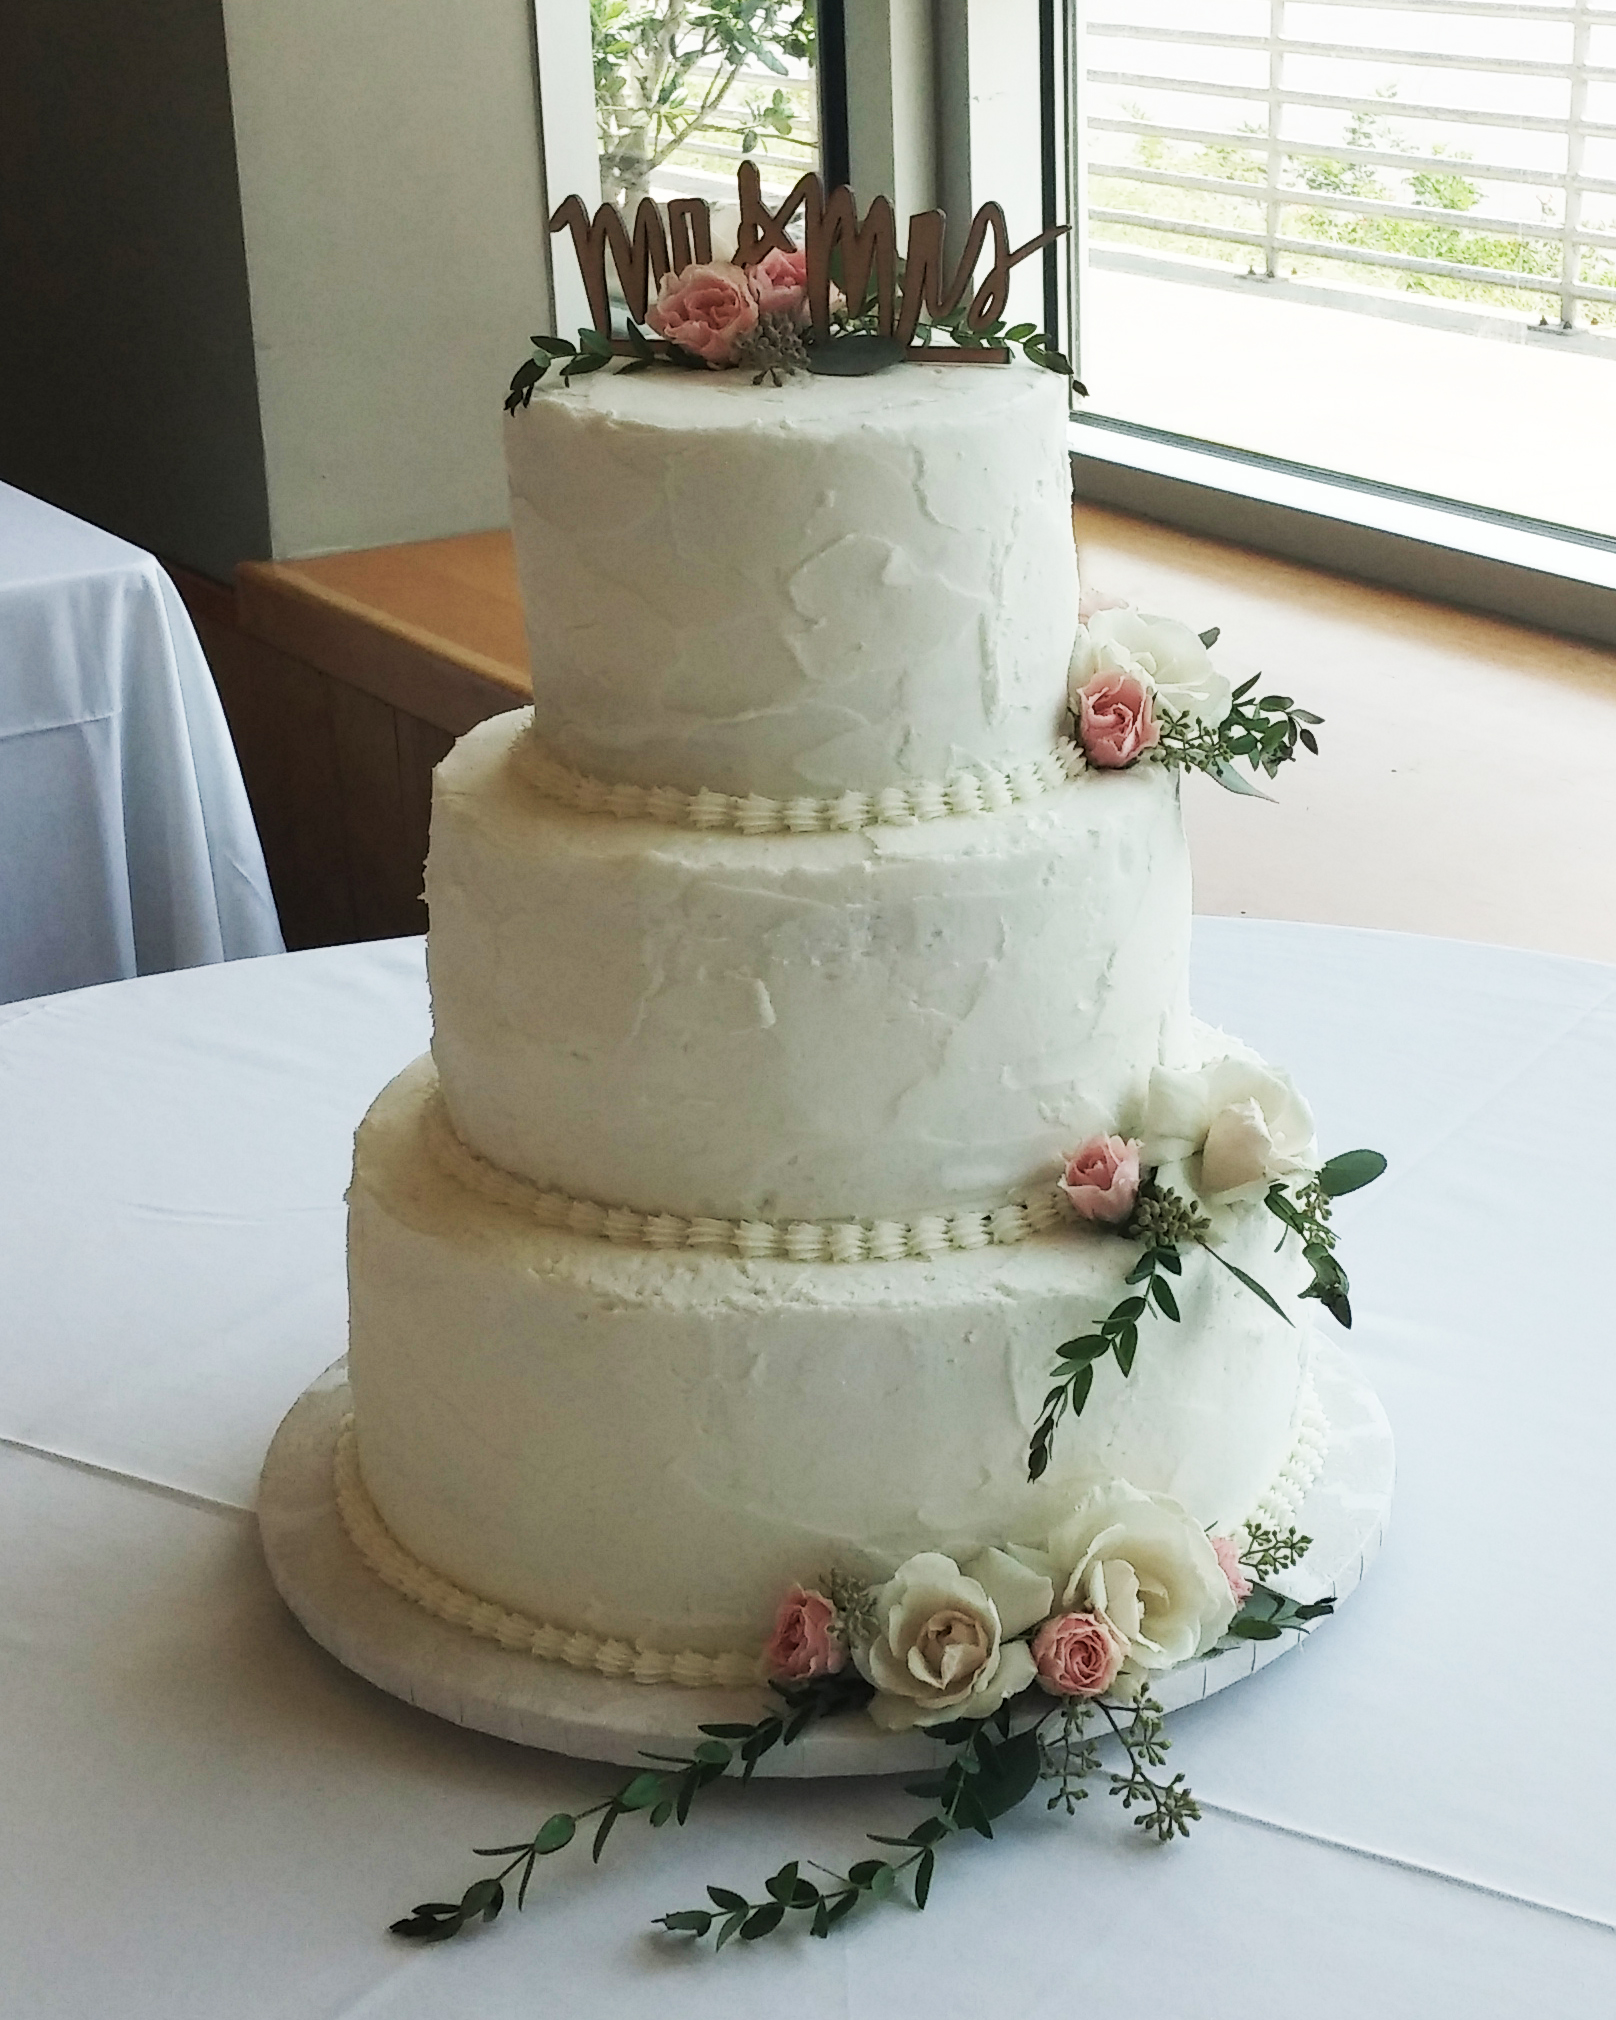 Wedding Cakes 7 This Cake Is 3 Tier 6 10 14